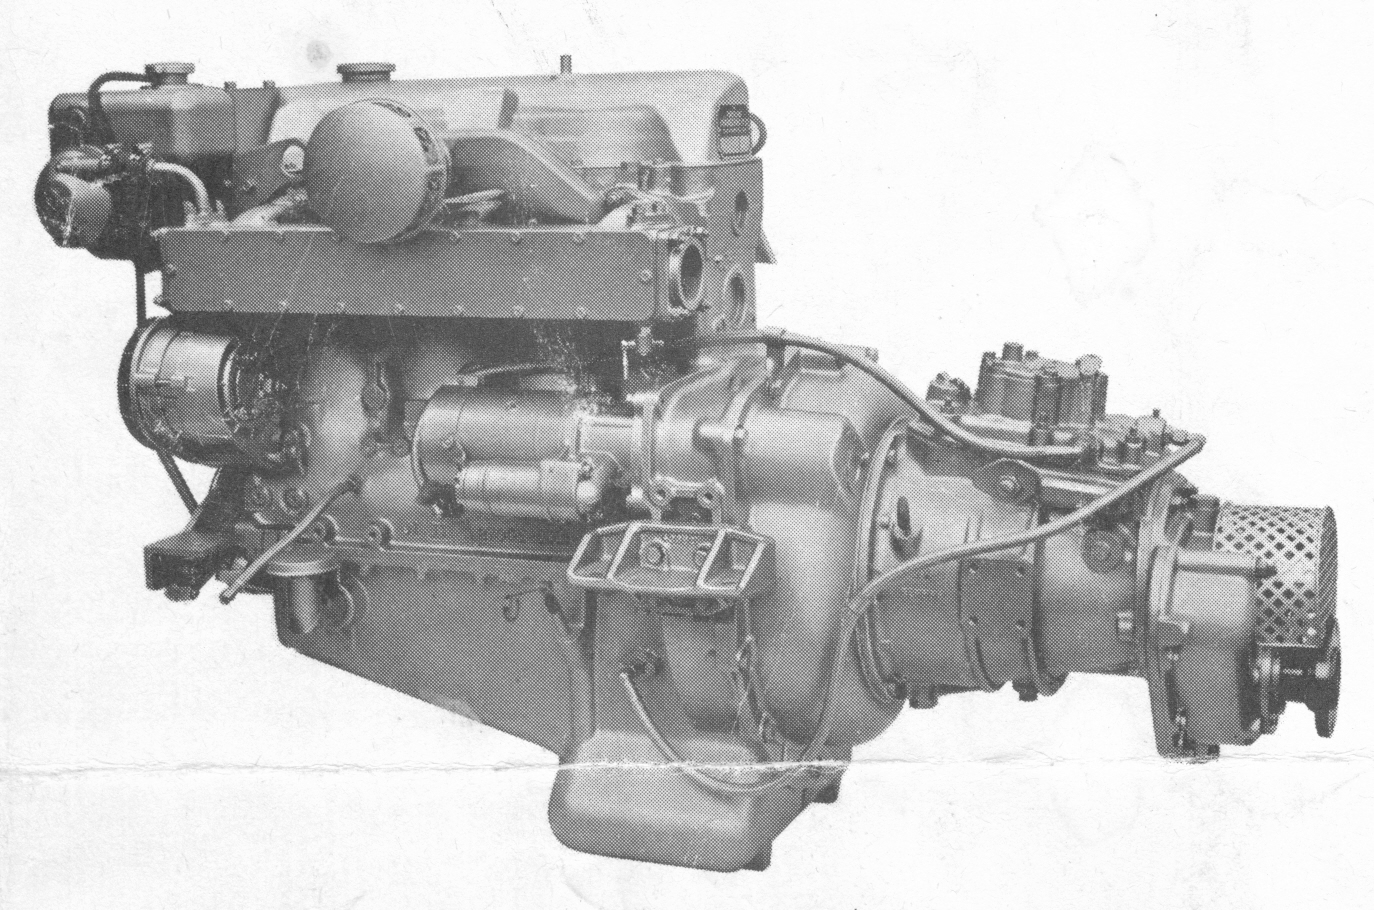 Parsons Pike II engine